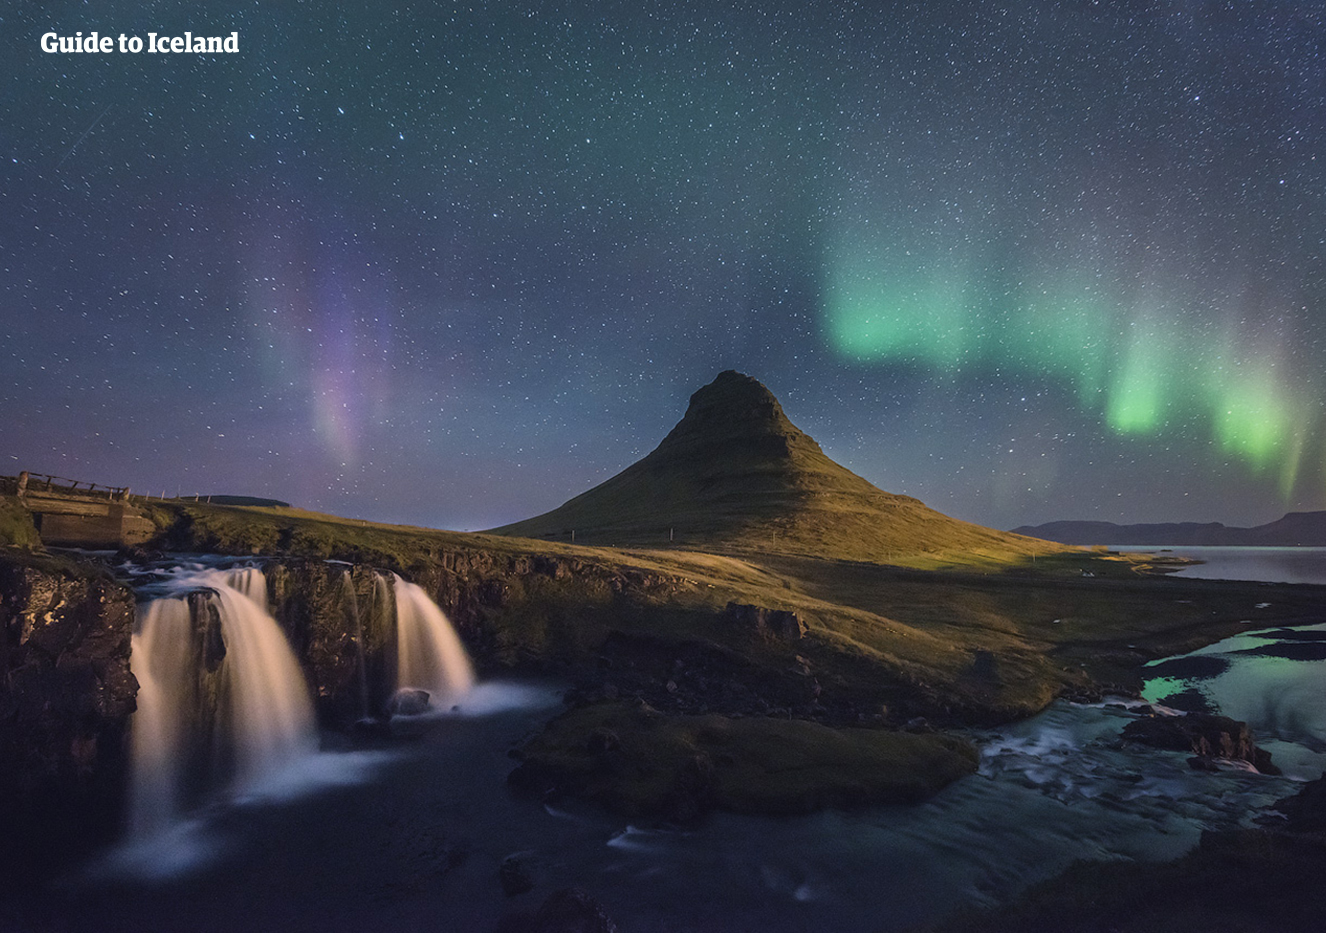 The conical mountain Kirkjufell can be found on the Snæfellsnes Peninsula.